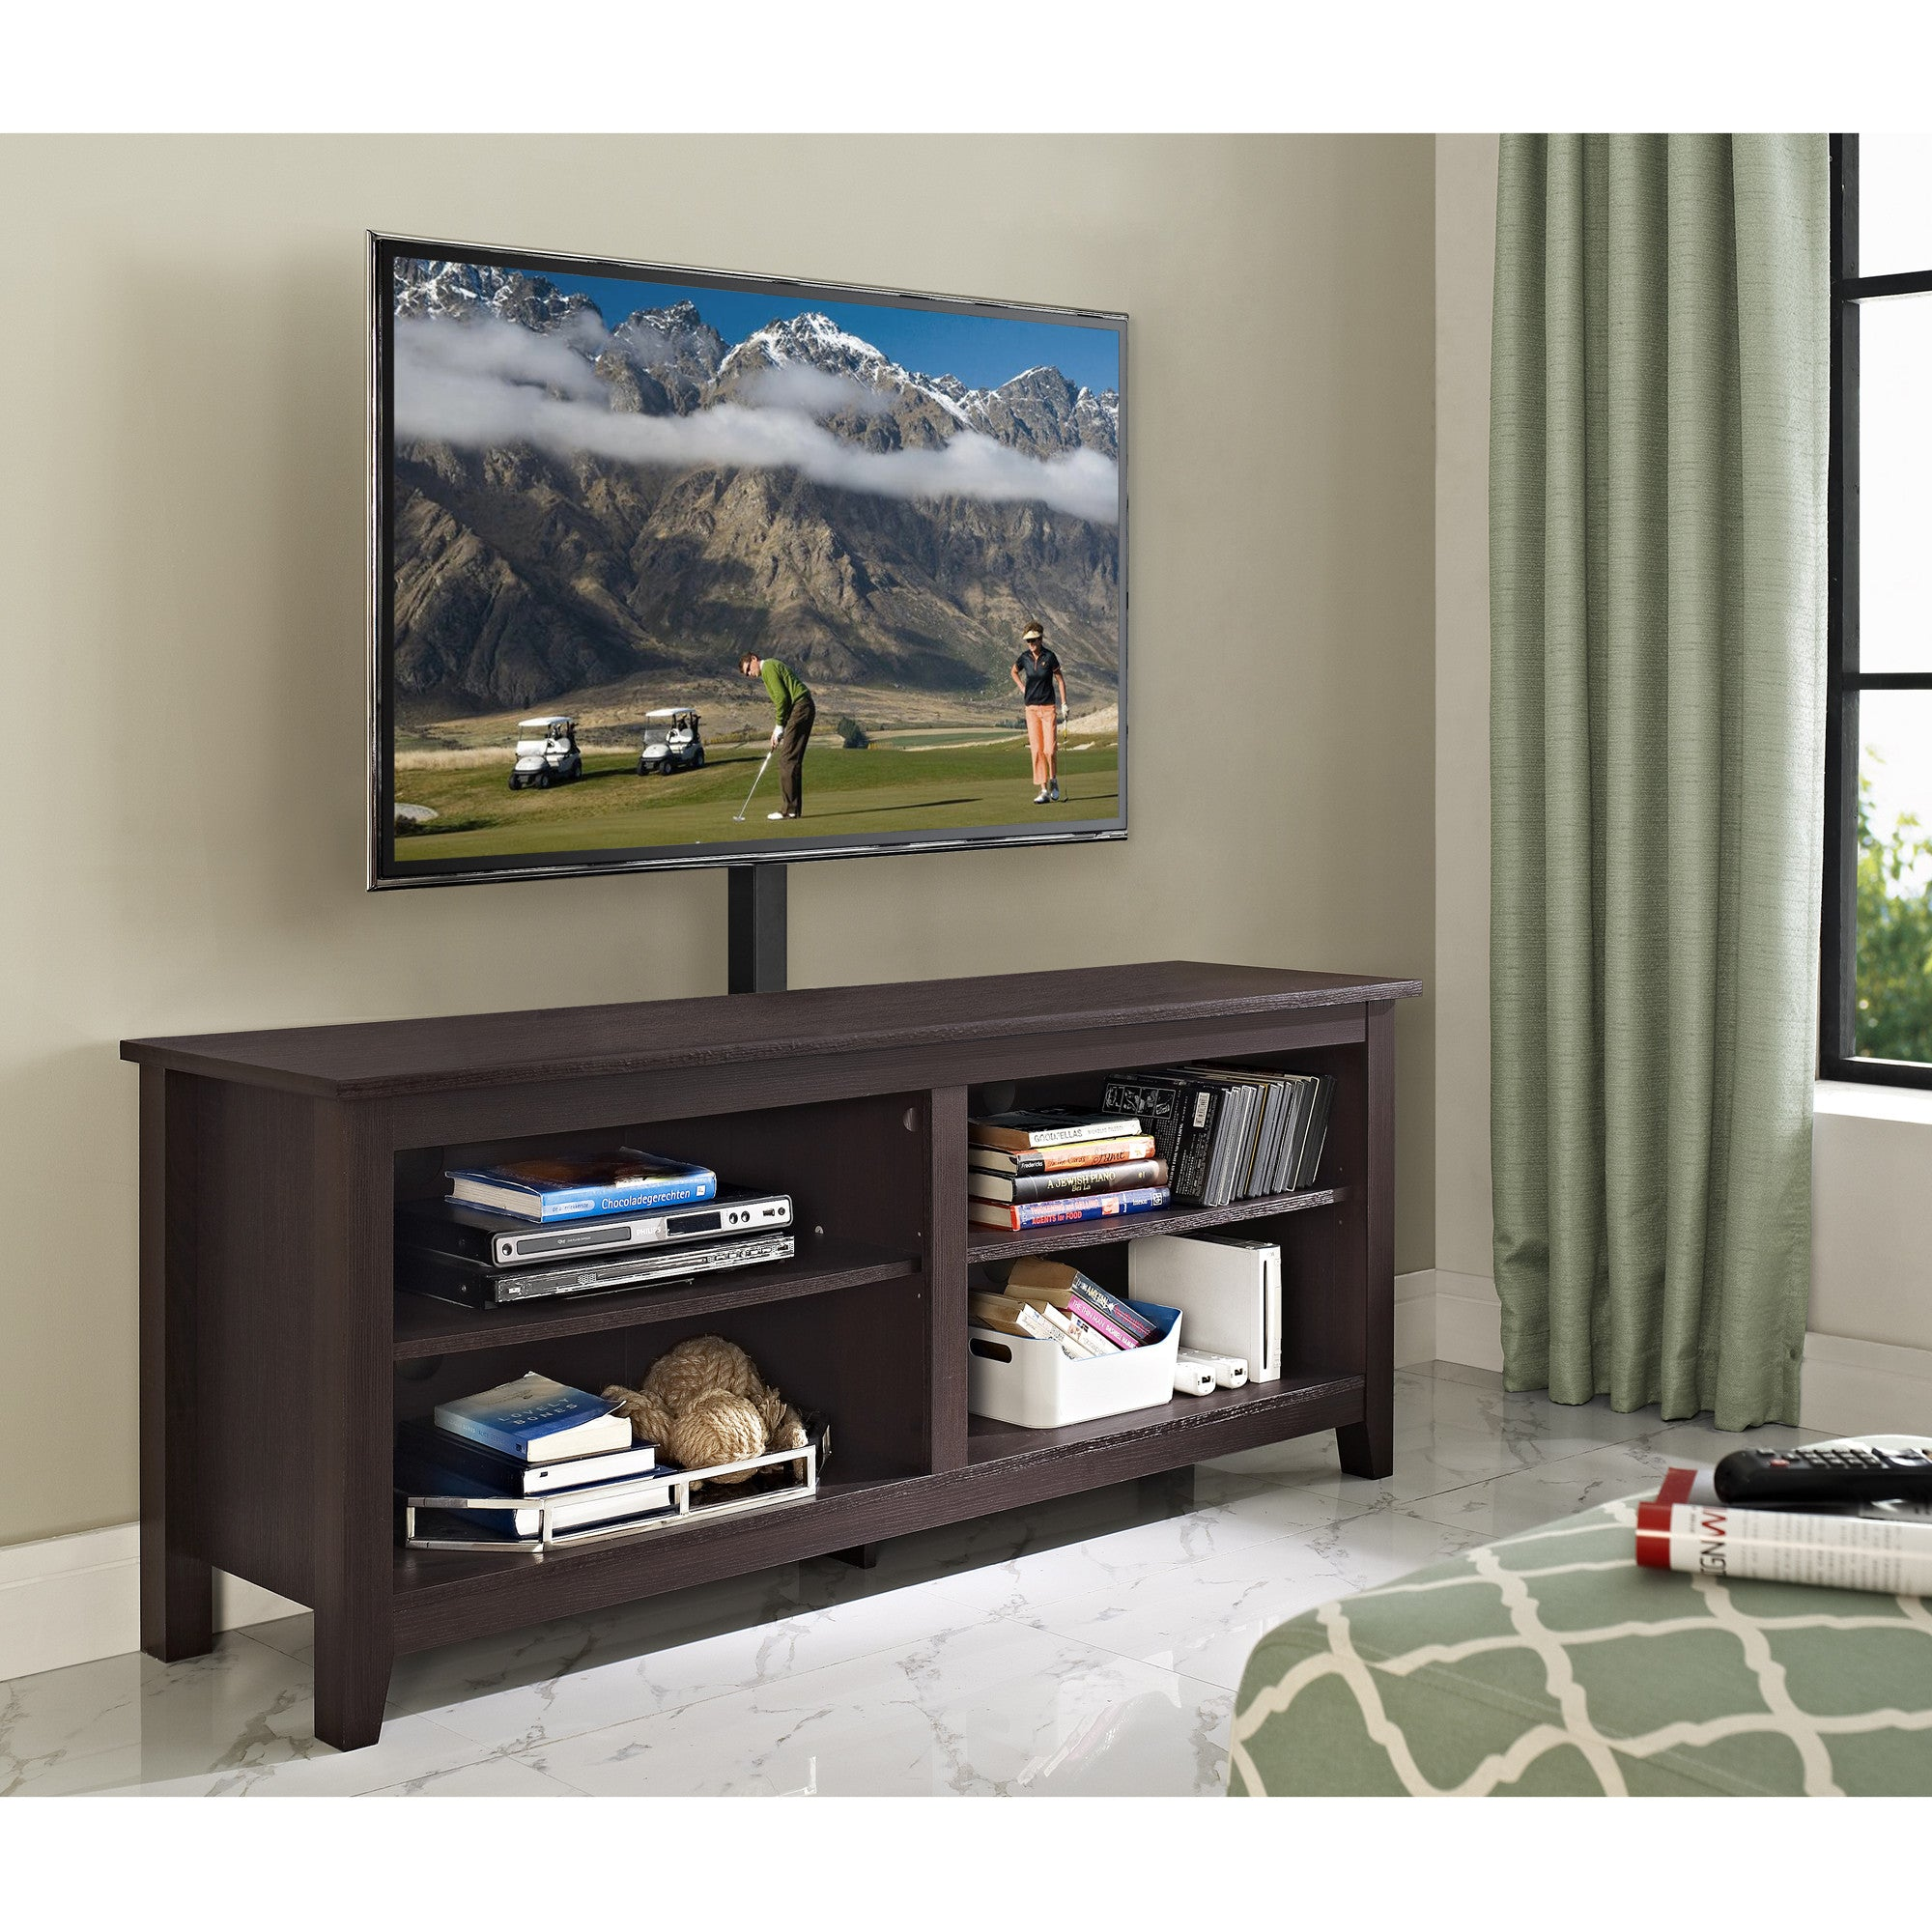 "Modern Espresso 58"" TV Stand with Integrated Mount"